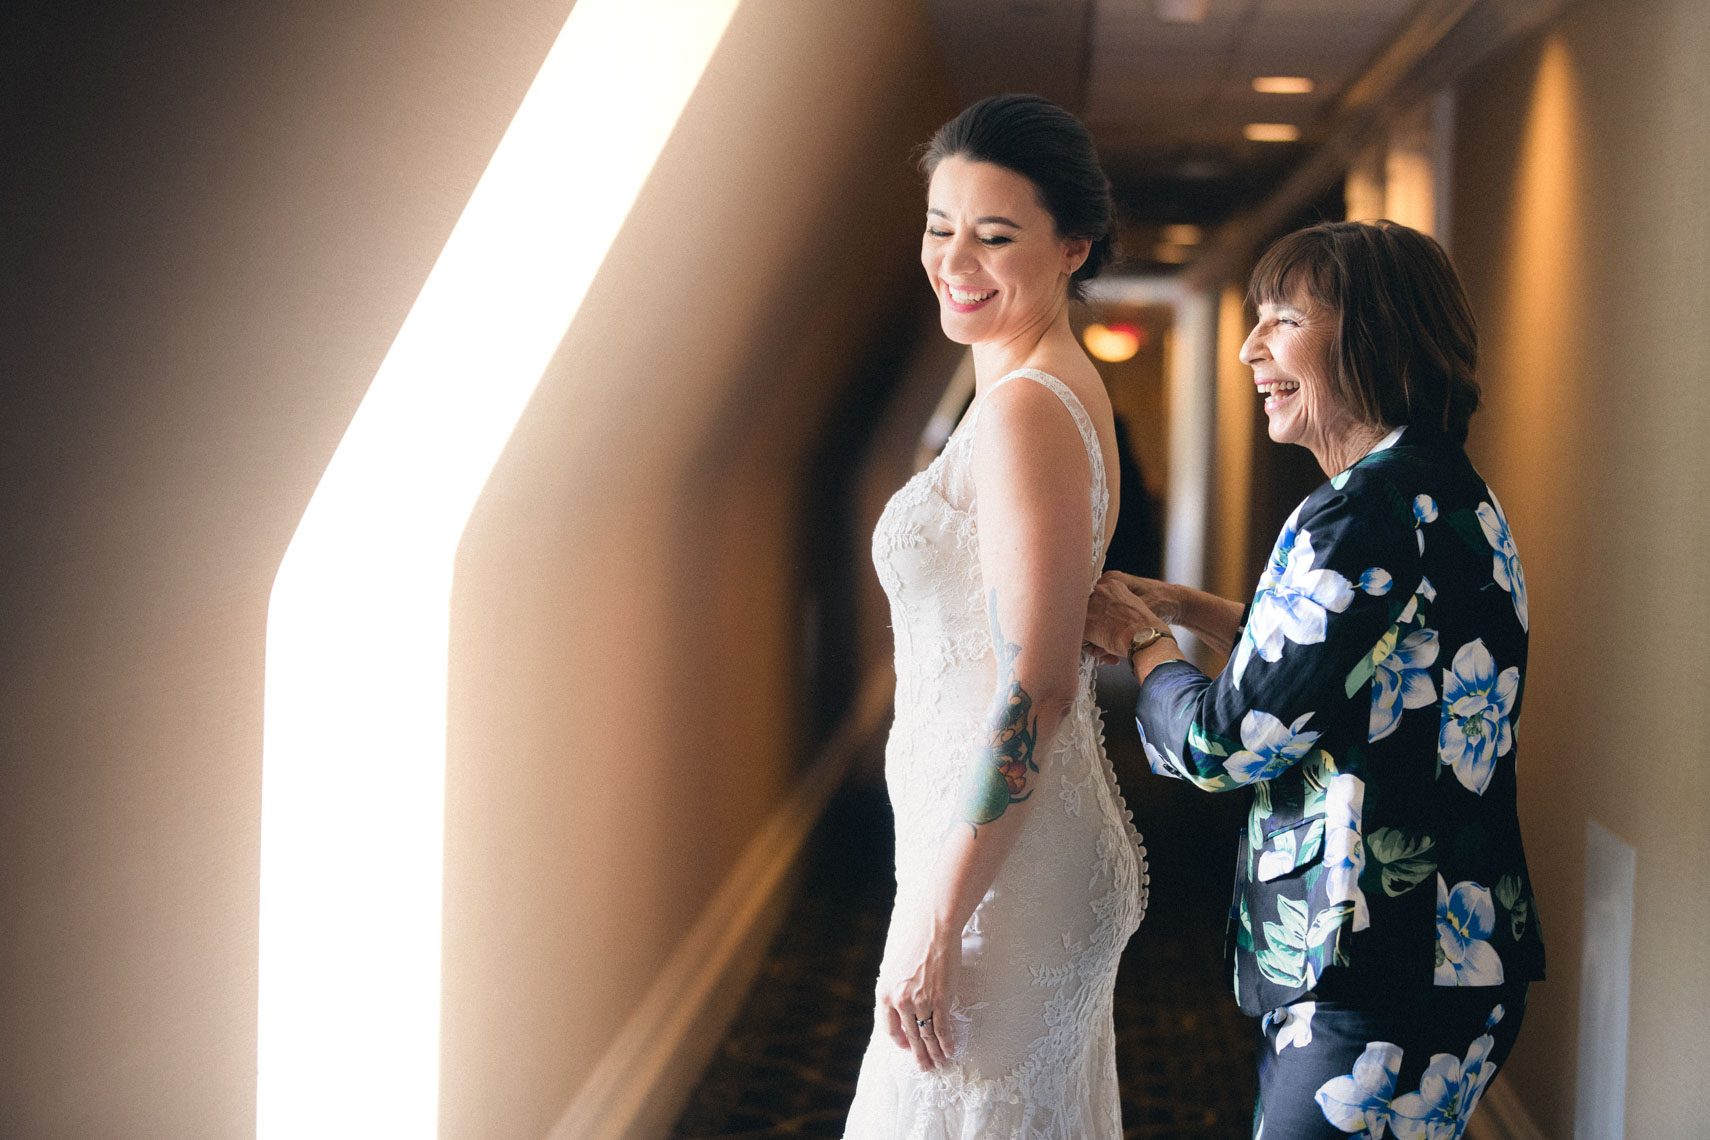 Mother helps bride into wedding dress before ceremony at Banff Springs Hotel, AB